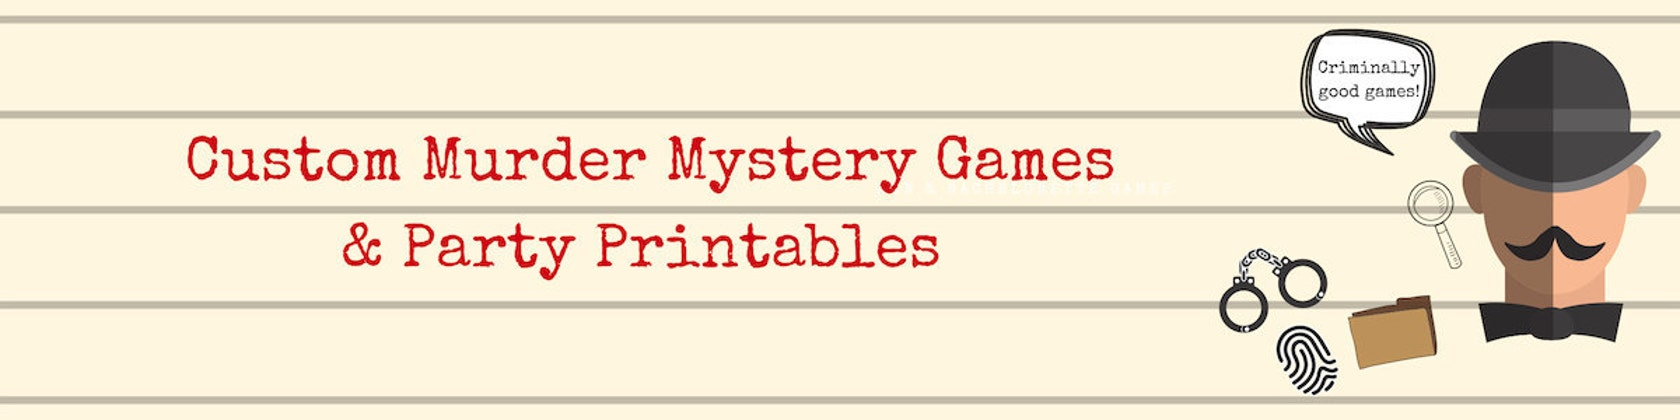 photograph relating to Printable Mystery Games called Murder Solution Tailor made Online games Occasion as a result of BespokeMurderMystery